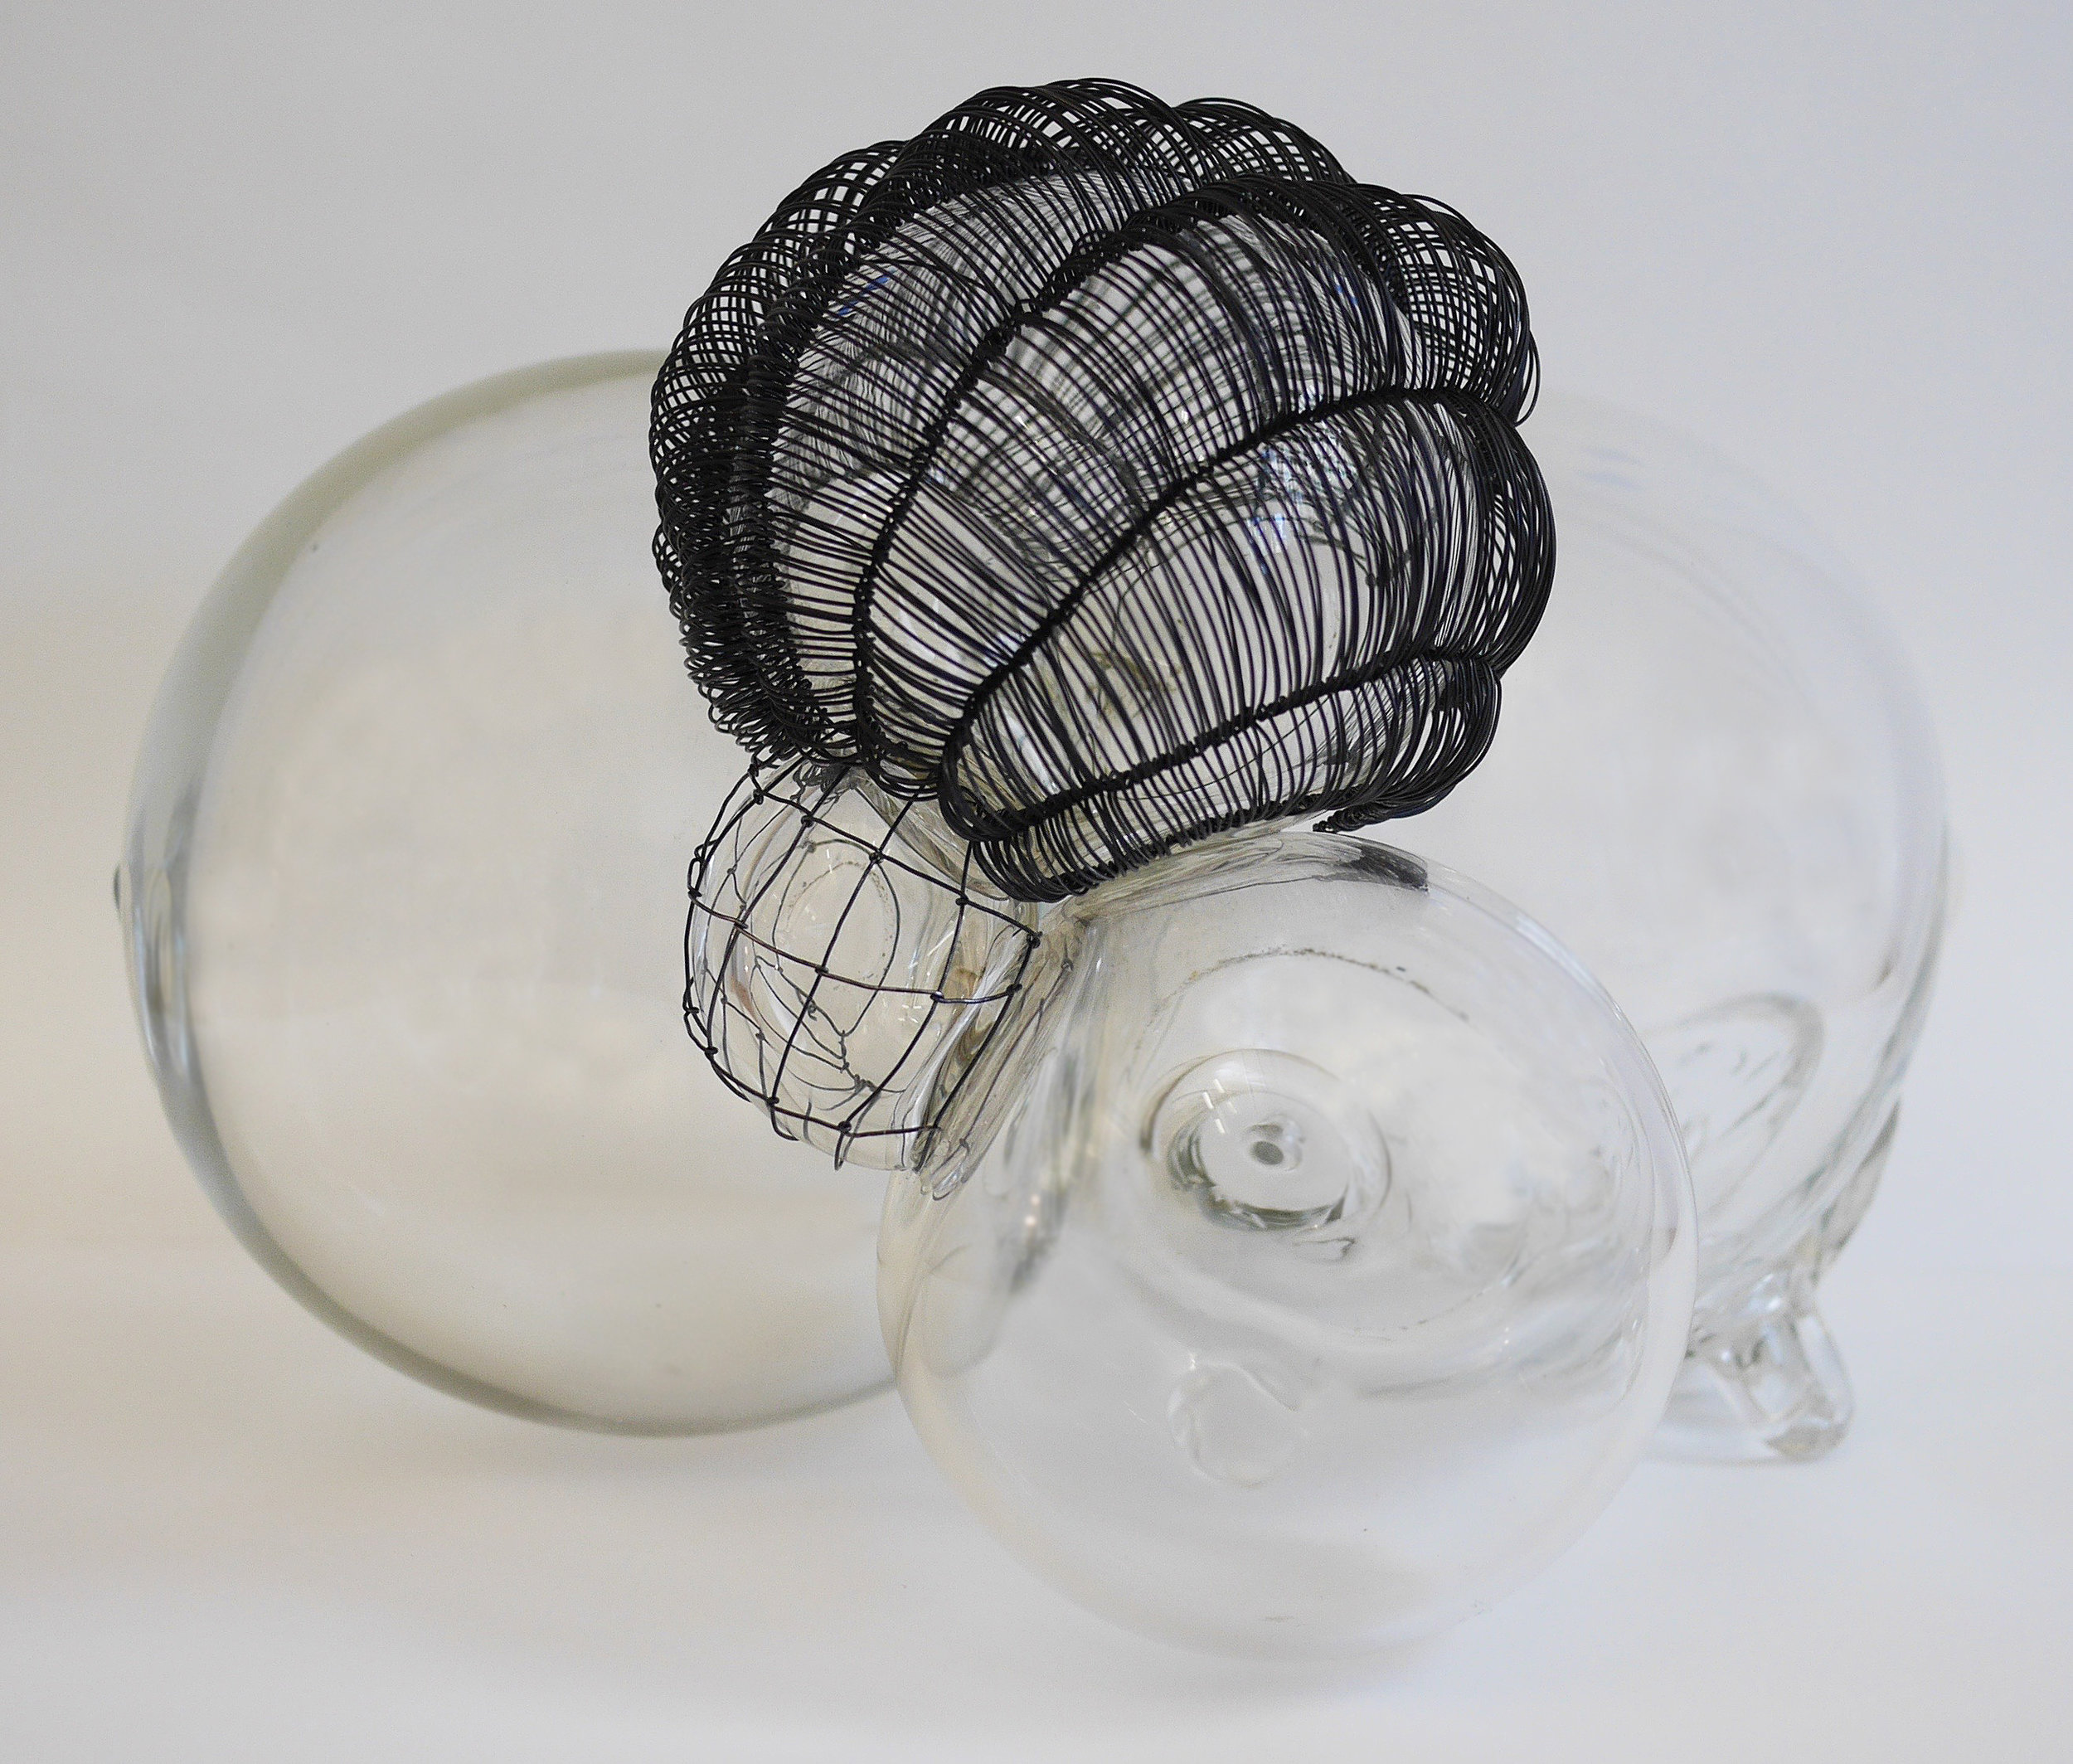 "Caged 3, blown glass with woven steel wire, 10""x10""x9"" , 2018"